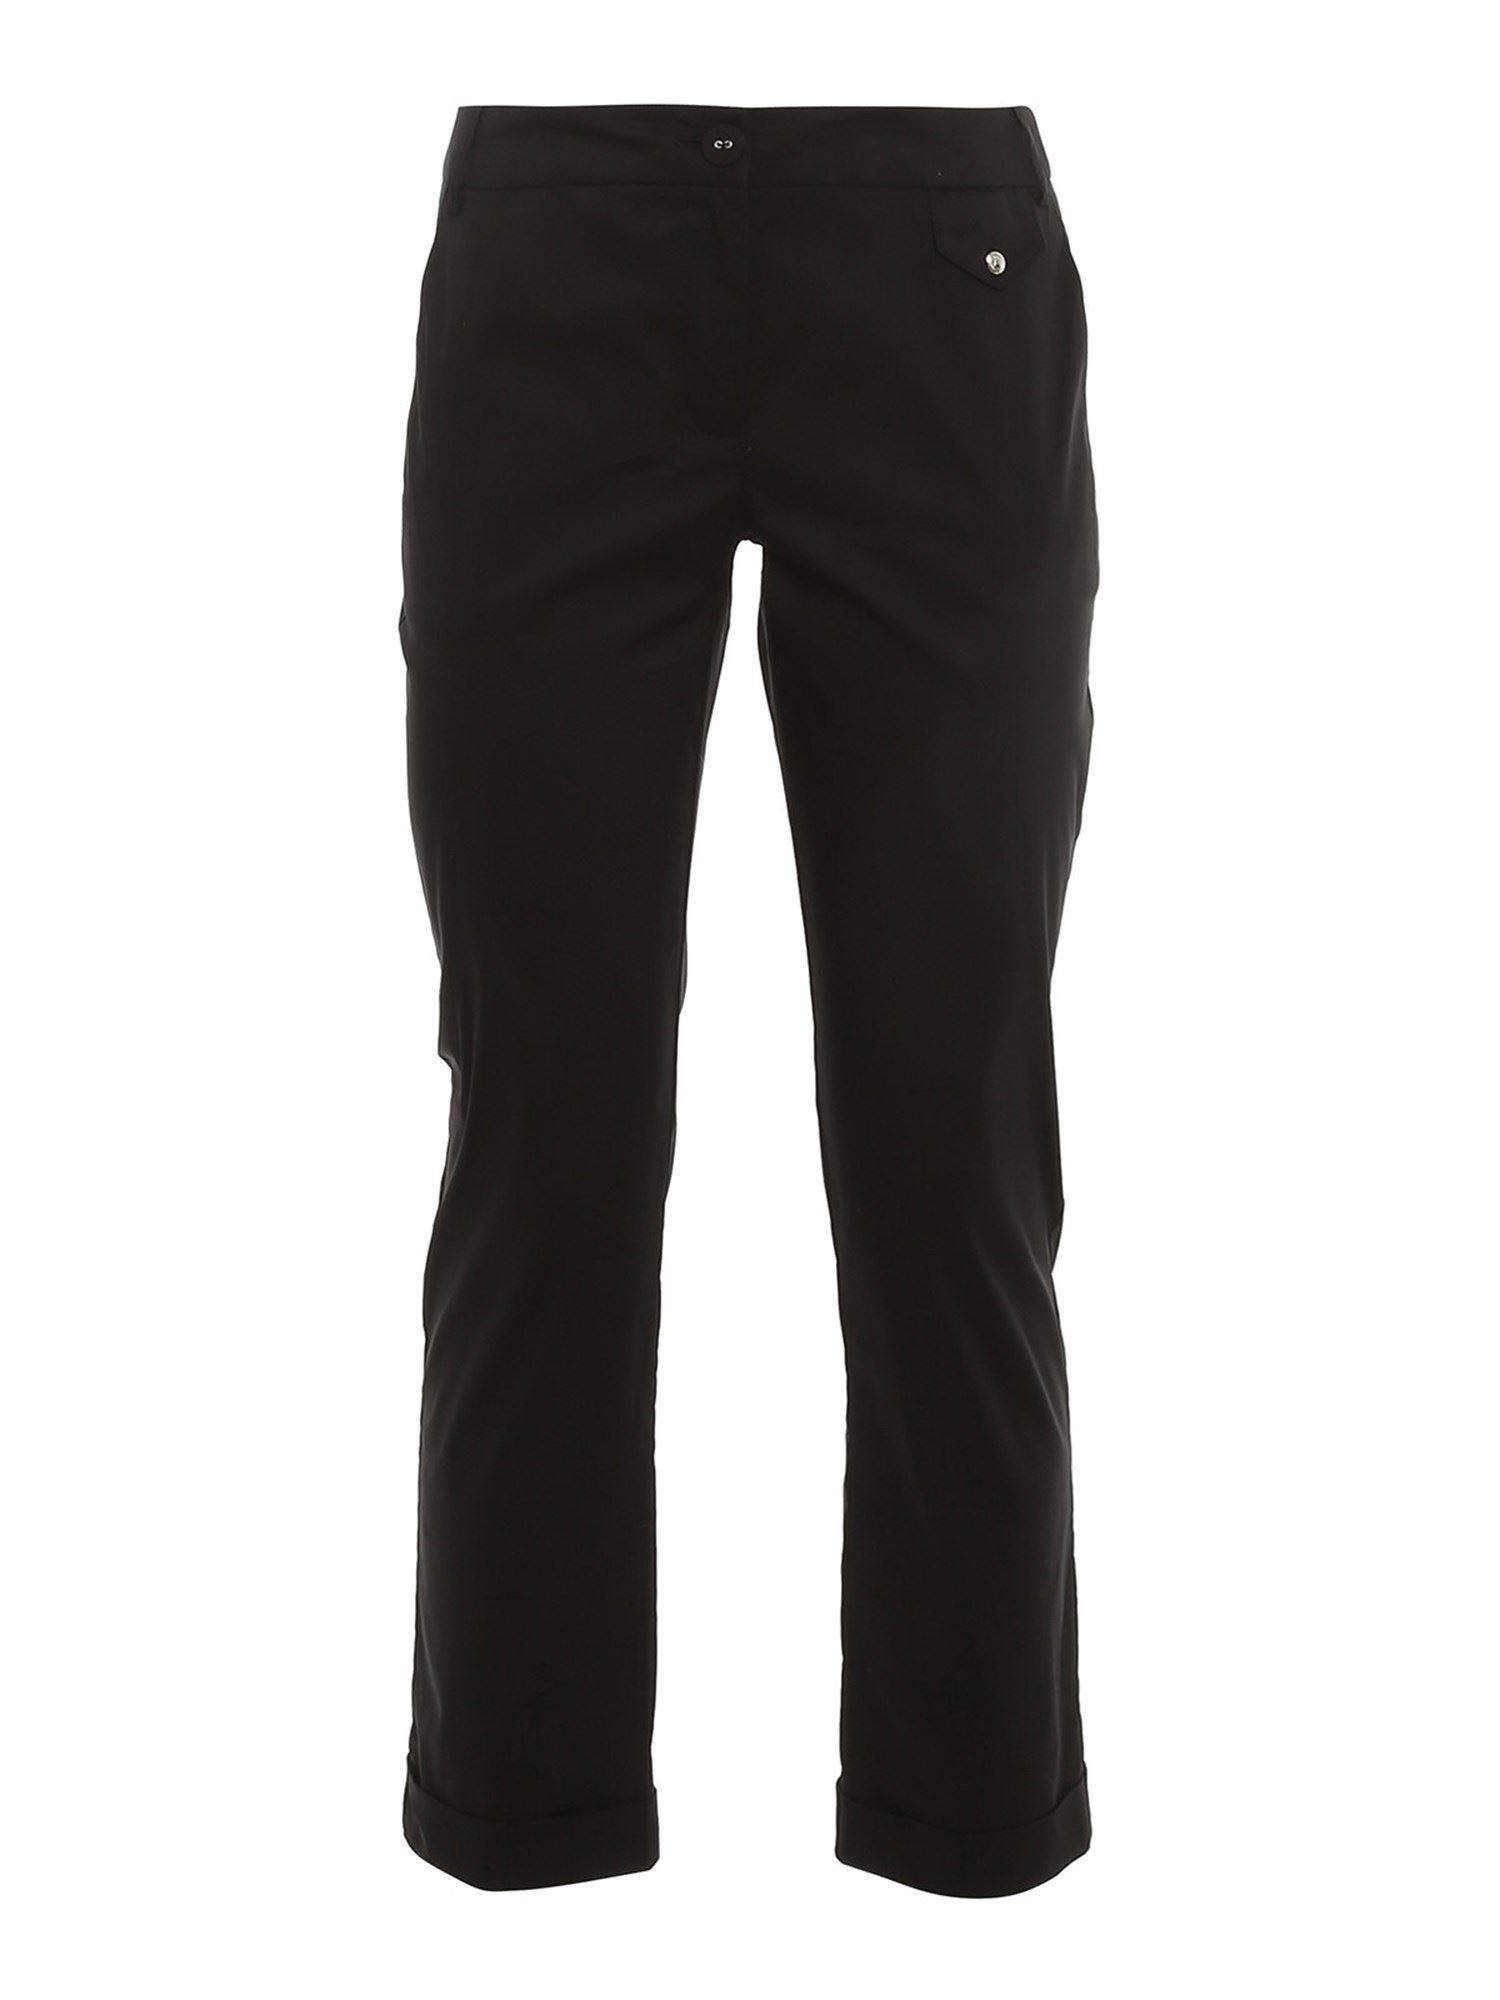 Patrizia Pepe Cottons CROPPED COTTON BLEND TROUSERS IN BLACK